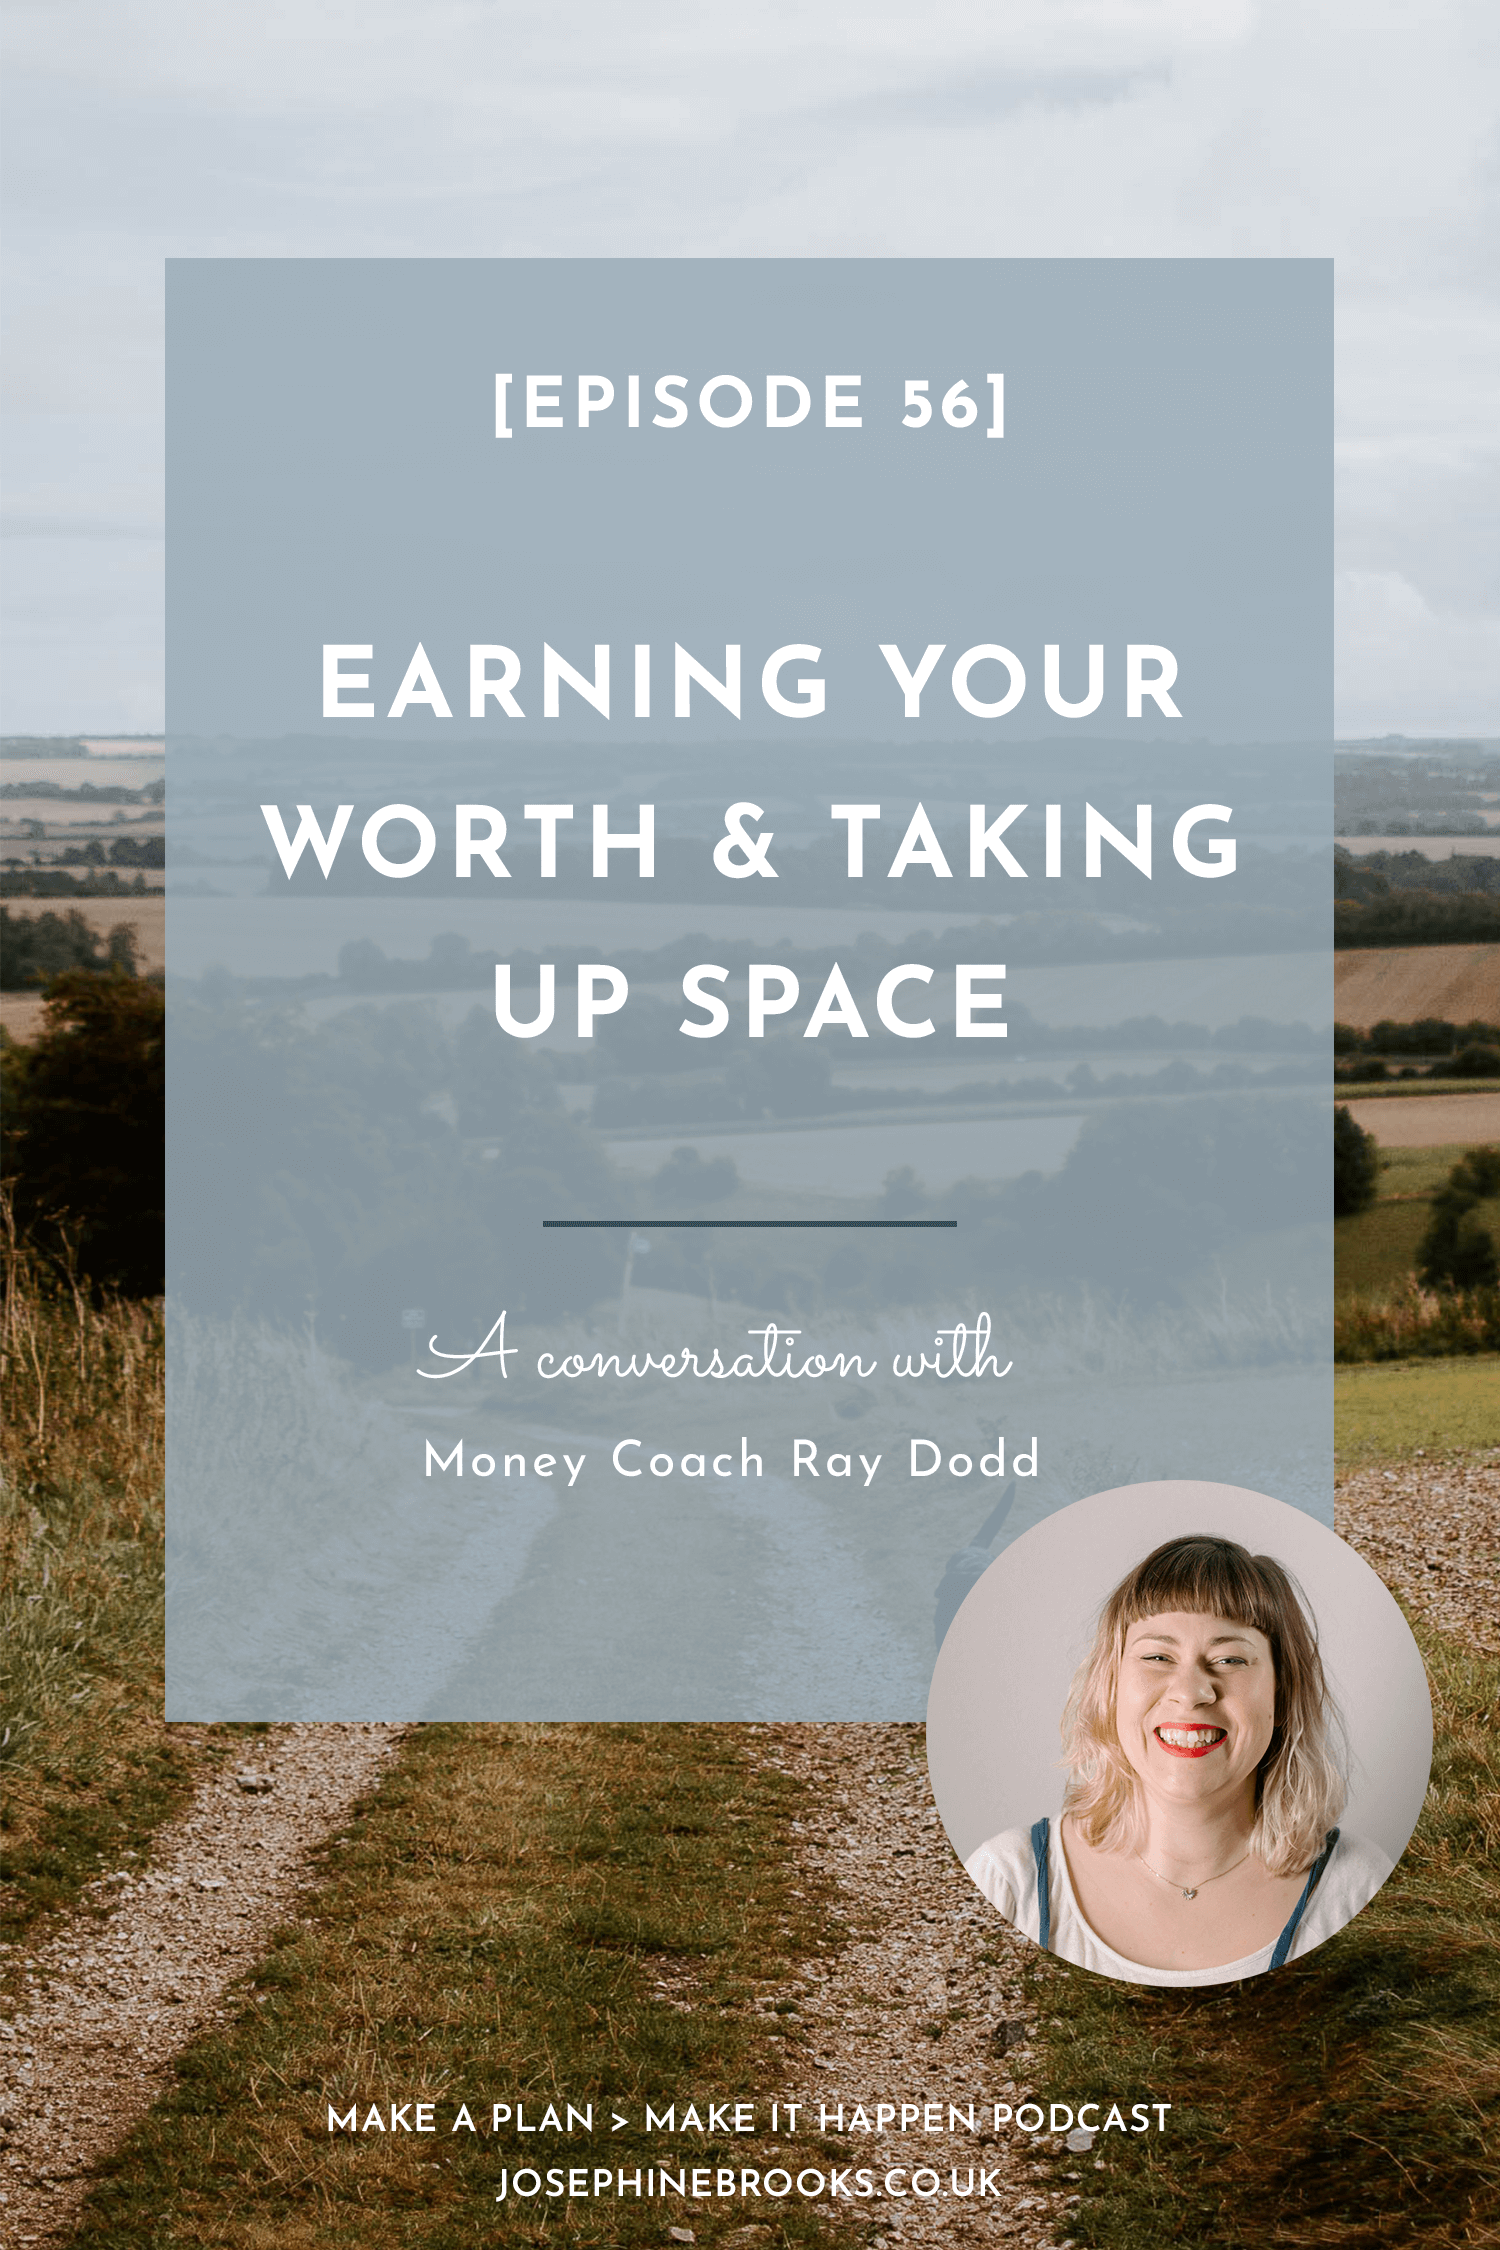 Earning your worth and taking up space - a conversation with Ray Dodd for Make a Plan, Make it Happen podcast